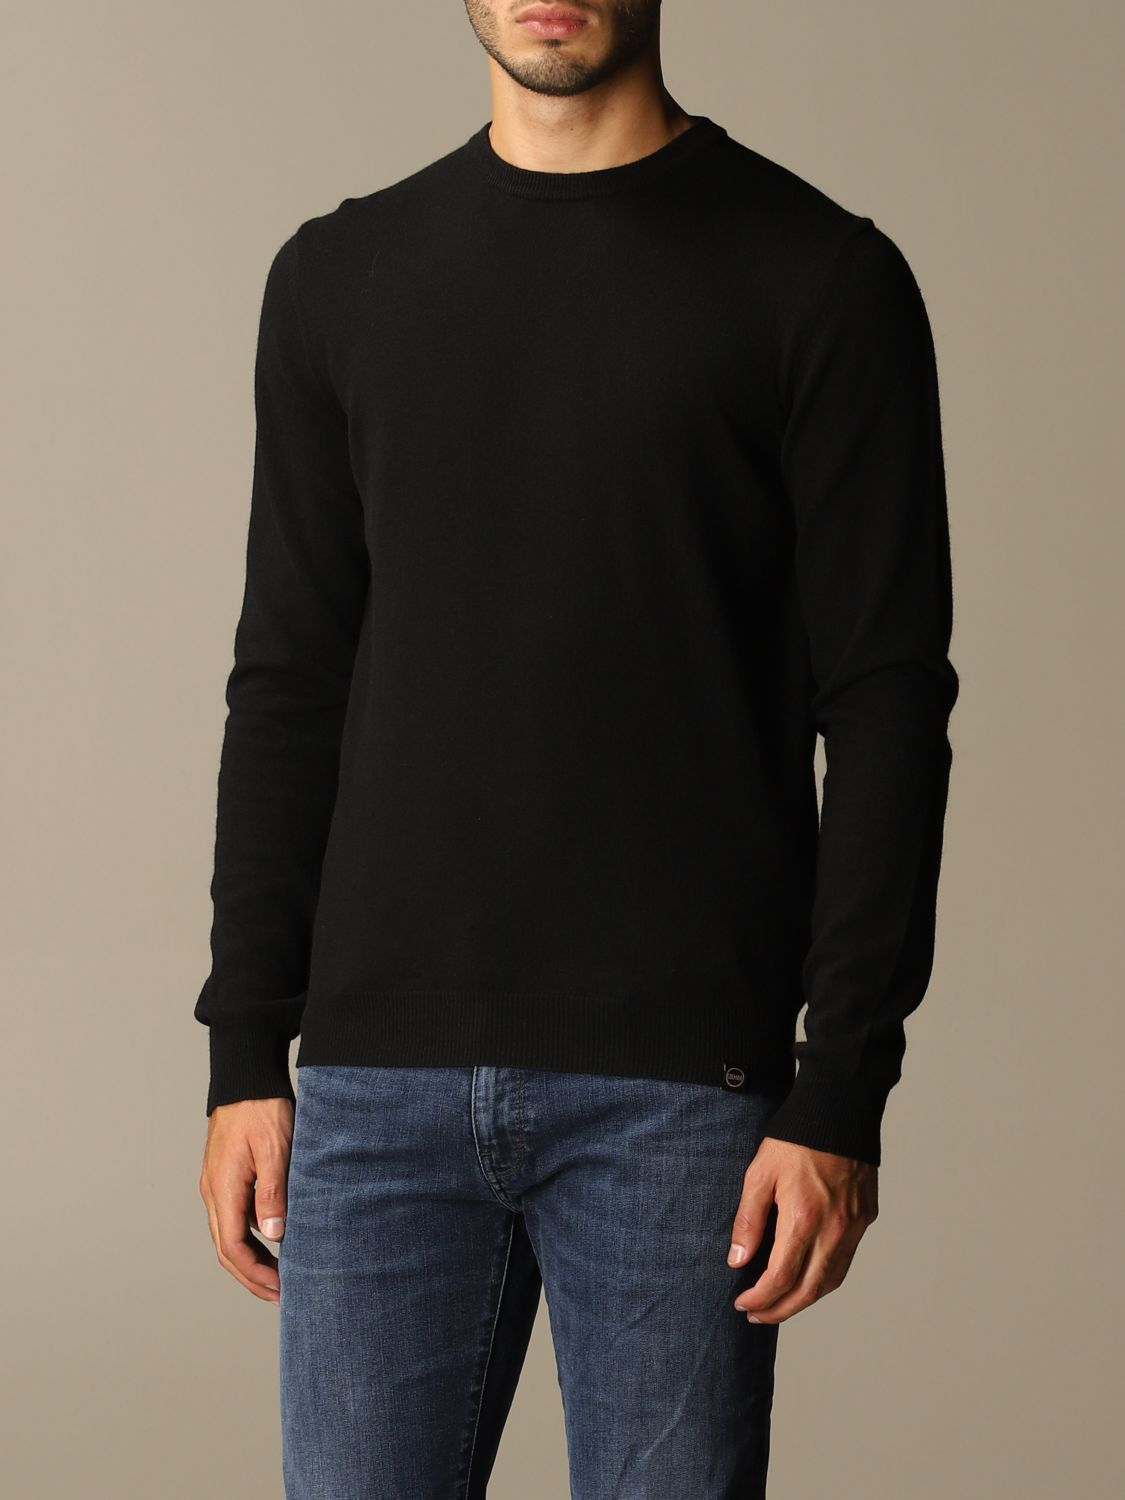 Sweater Colmar: Colmar crewneck sweater in wool and cashmere blend black 3